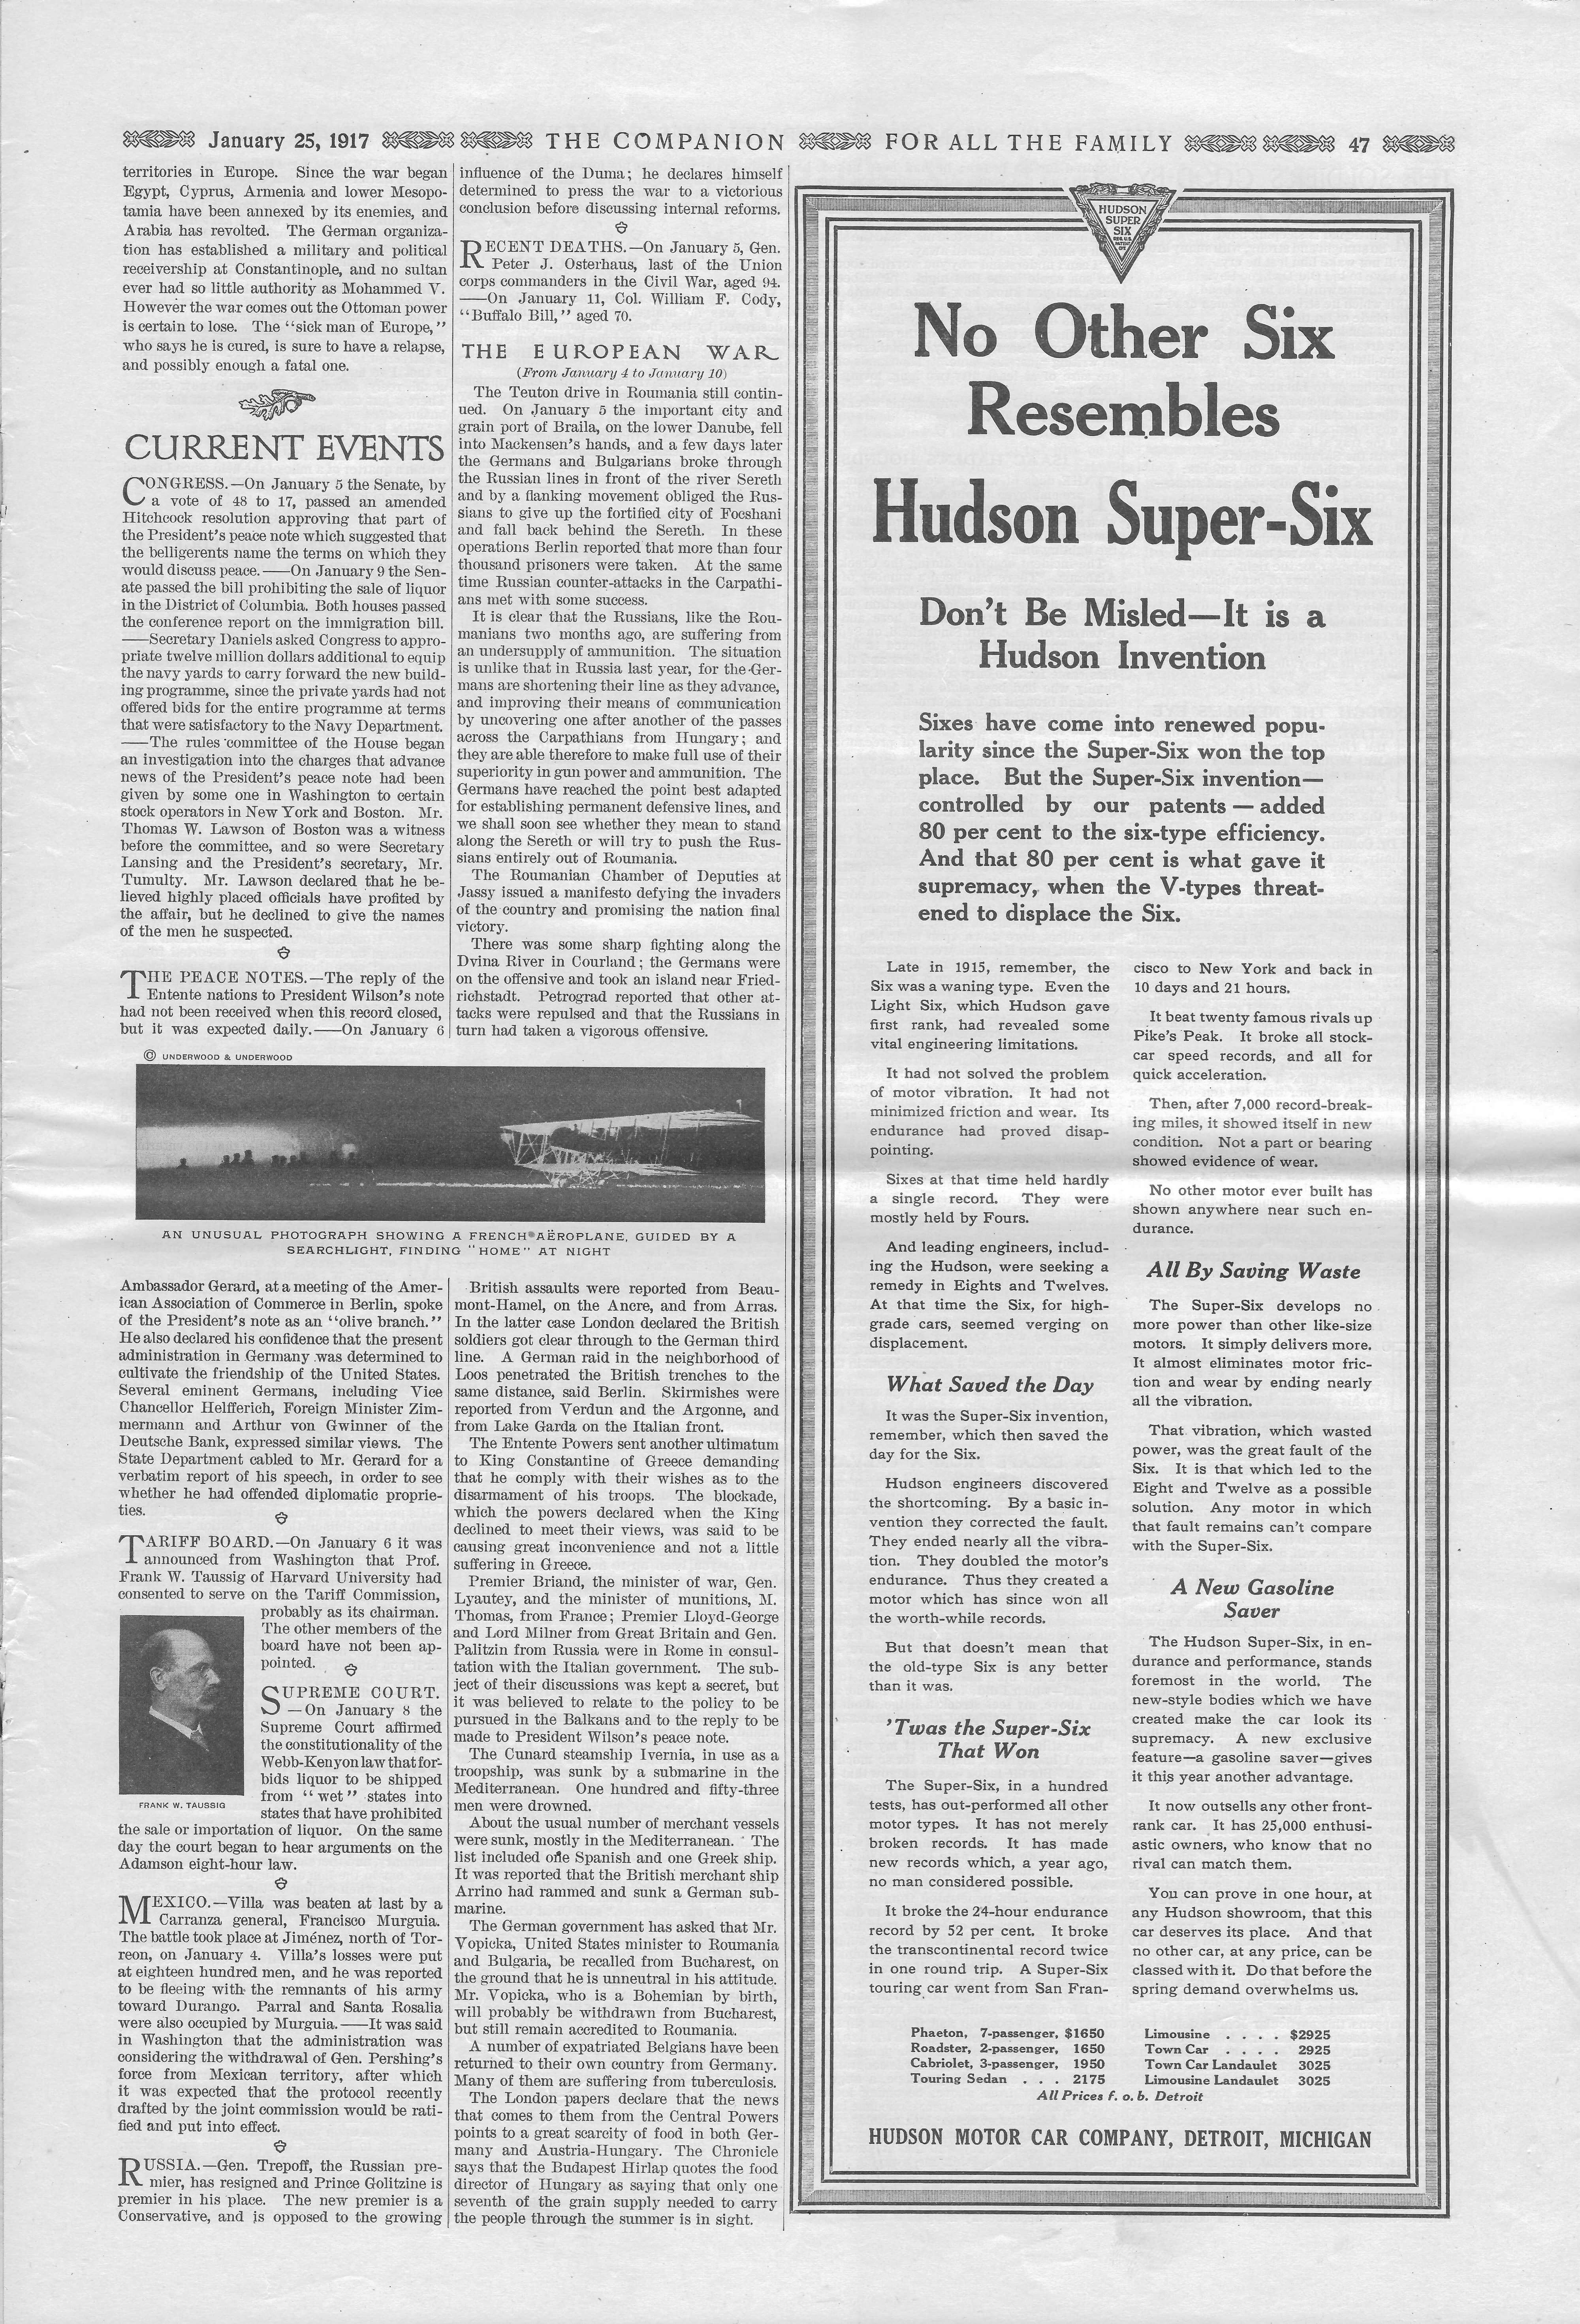 The Youth's Companion - January 25, 1917 - Page 47